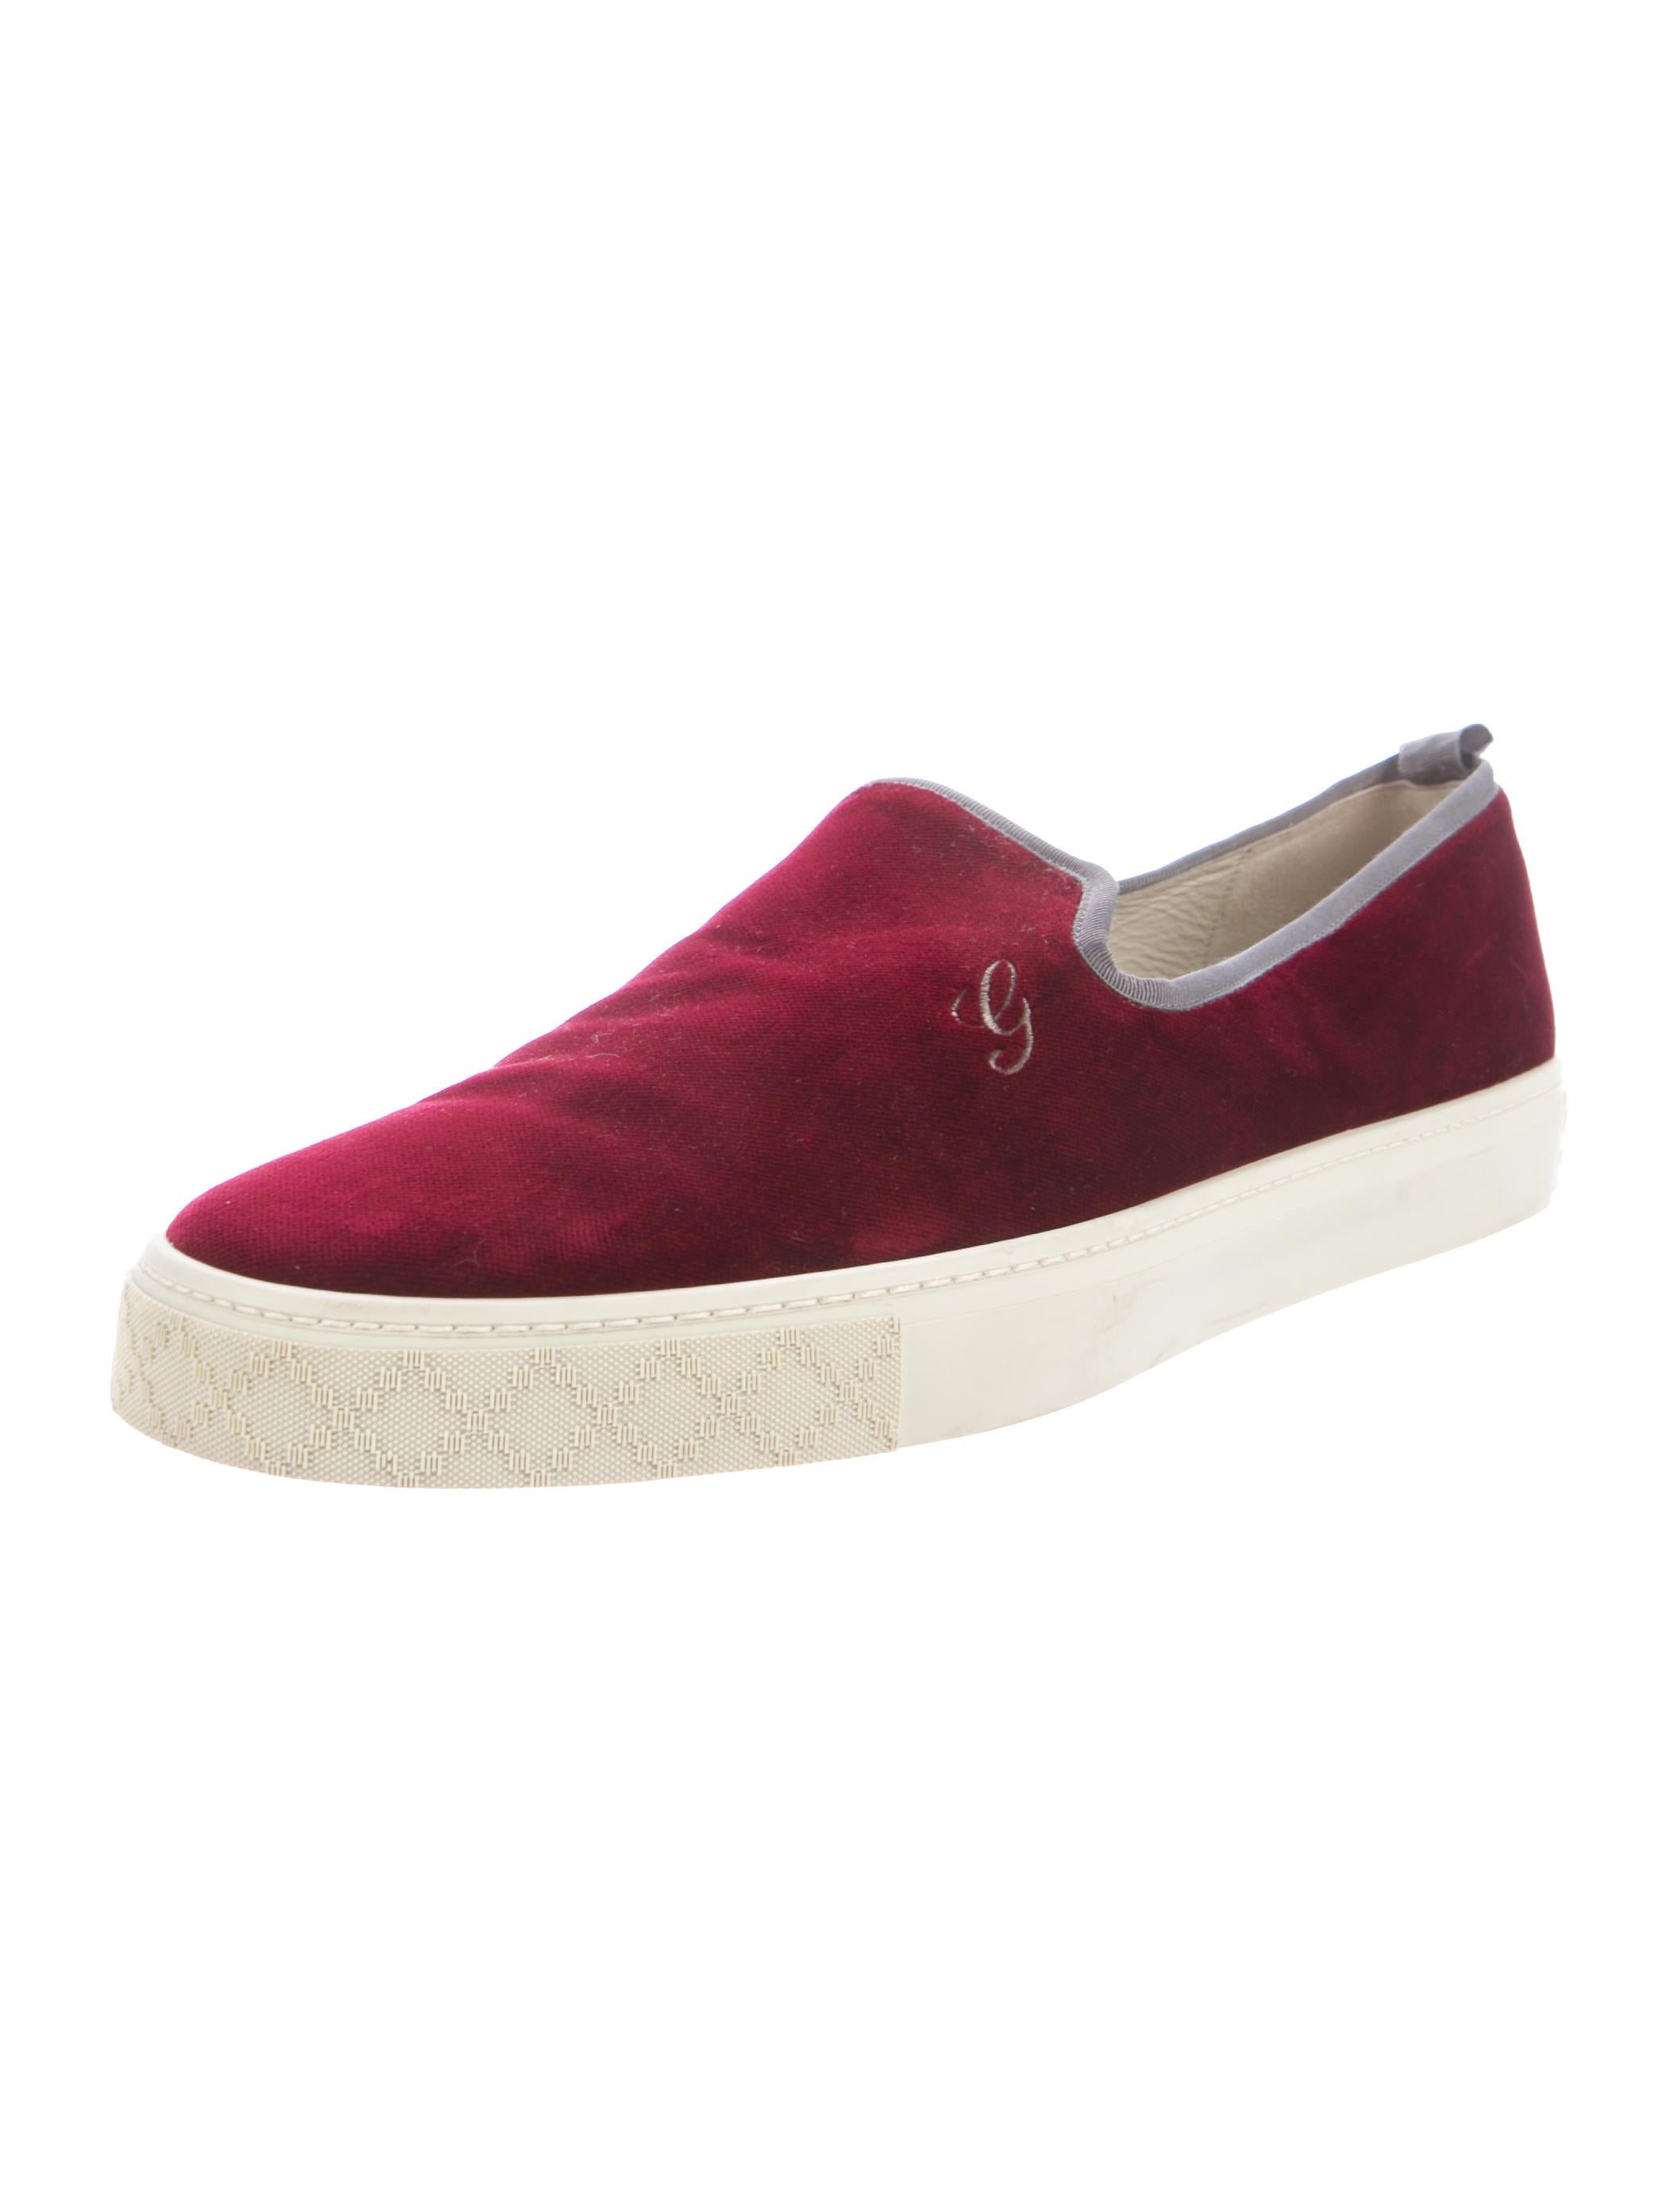 gucci velvet slip on sneakers shoes guc159747 the